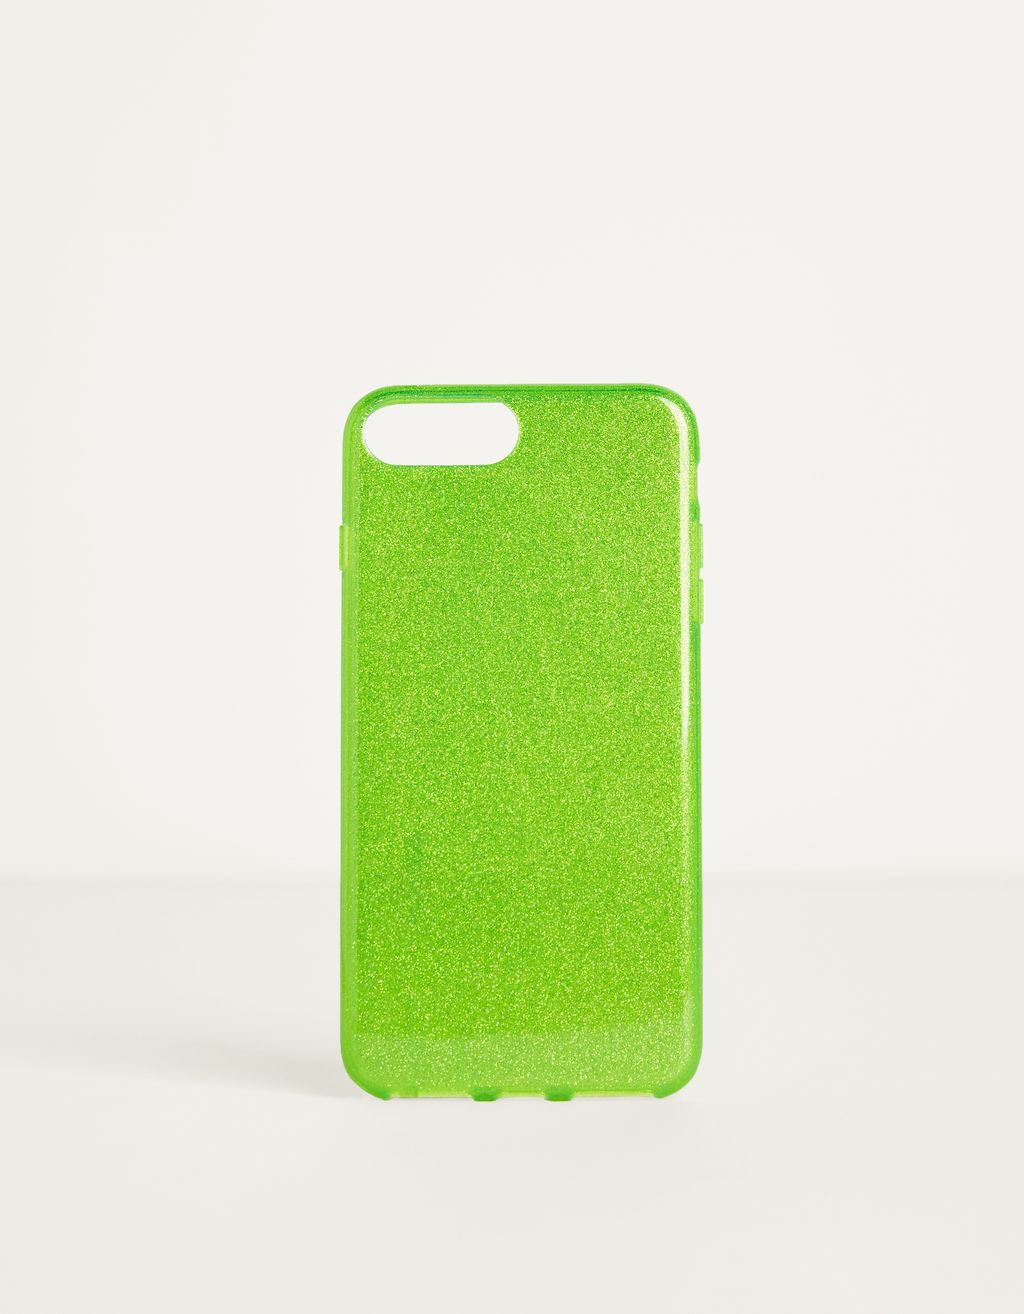 Carcasa de purpurina iPhone 6 plus / 7 plus / 8 plus